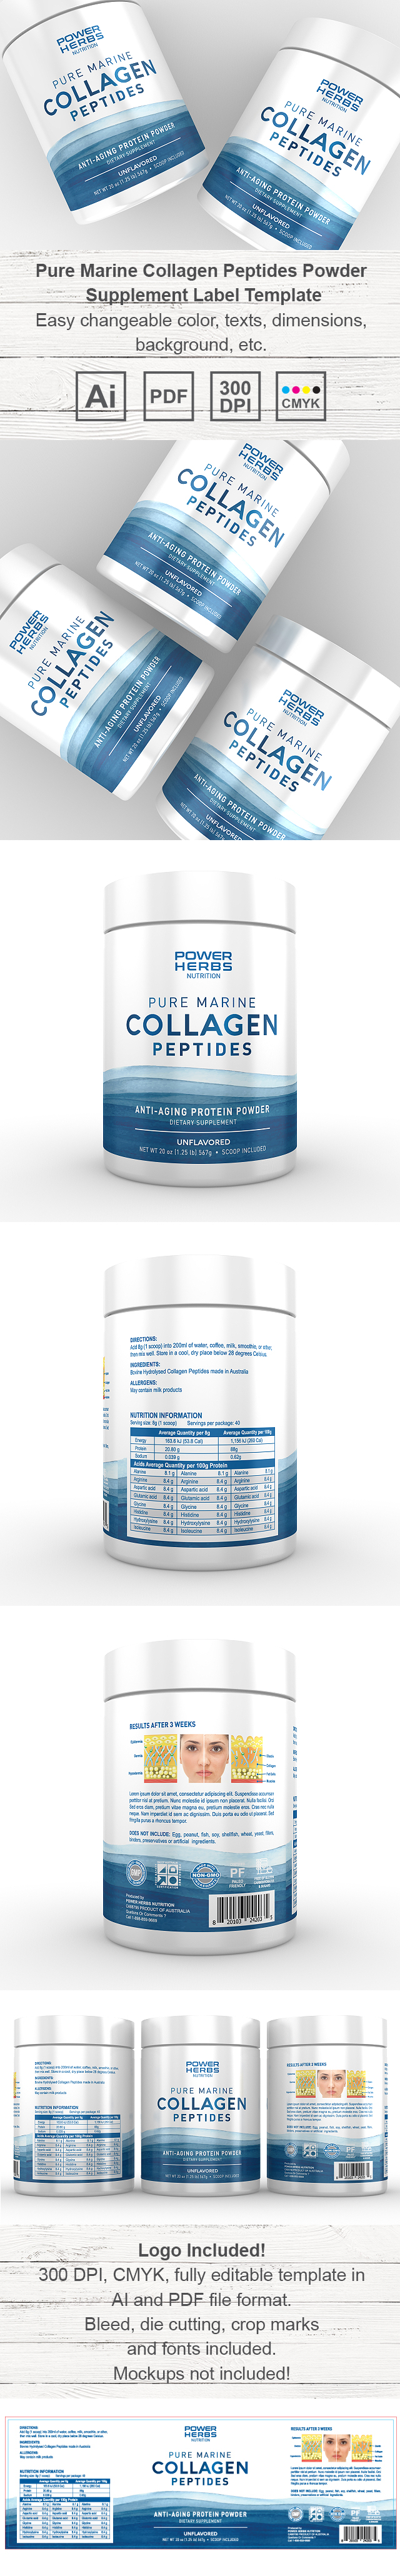 Marine Collagen Peptides Powder Supplement Label Template